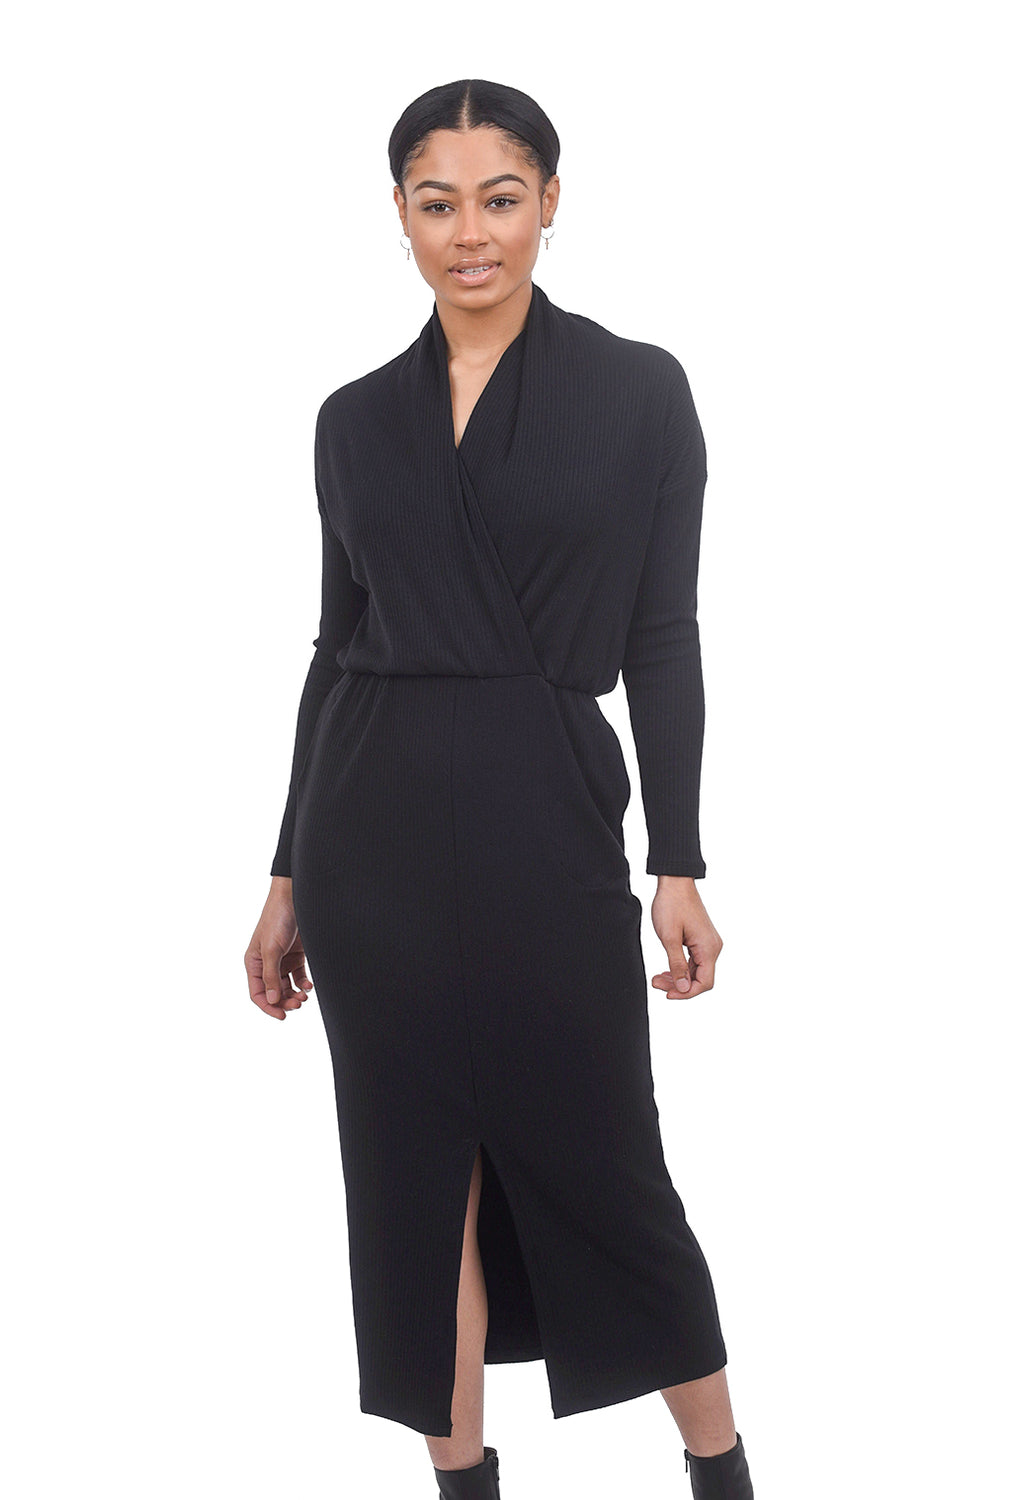 Sarah Liller Lana Dress, Black